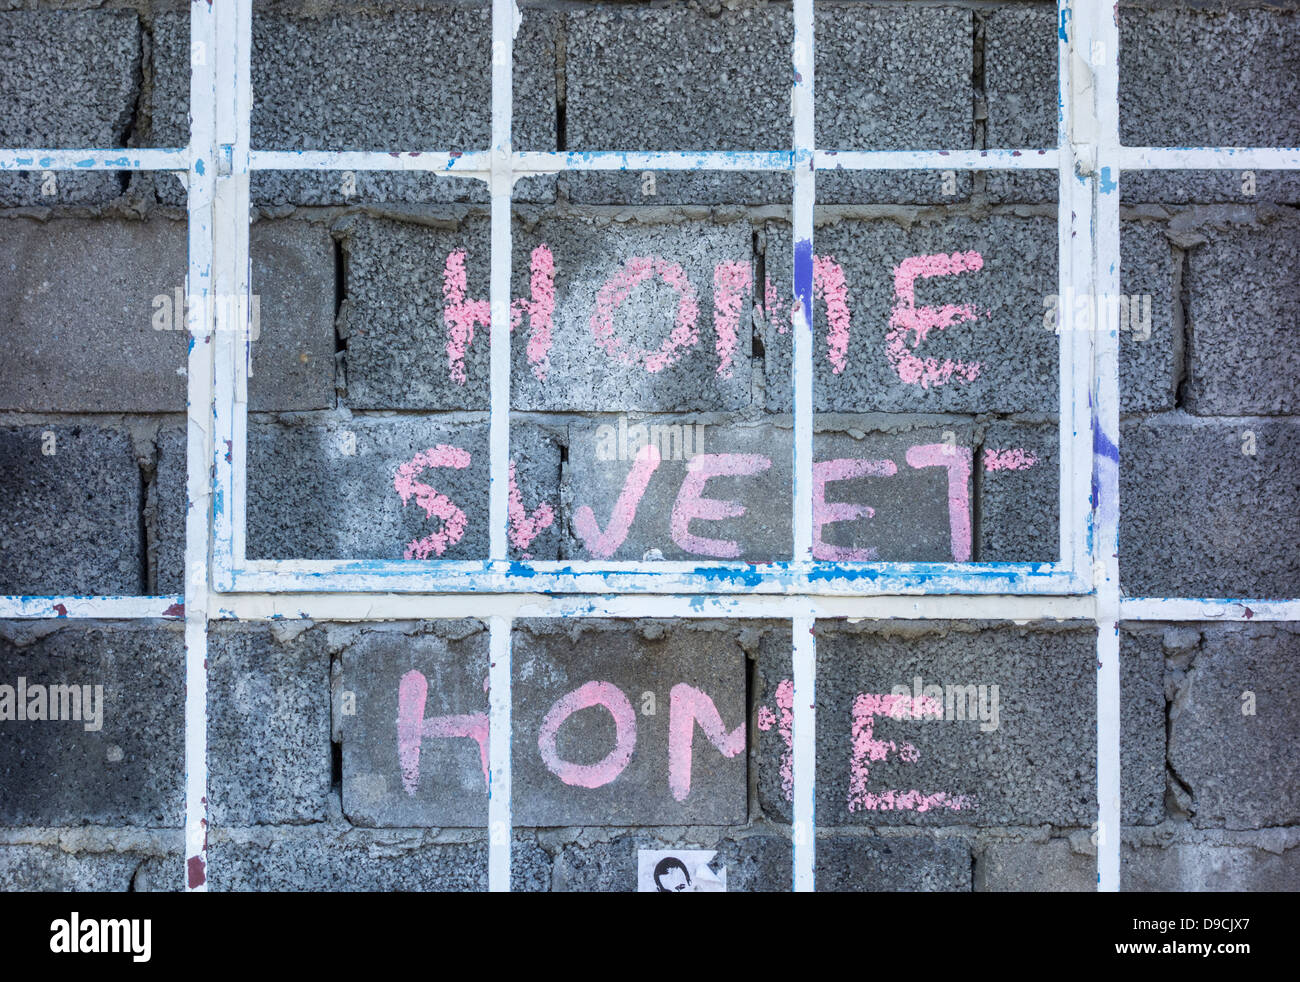 Home sweet home painted on bricked up building - Stock Image